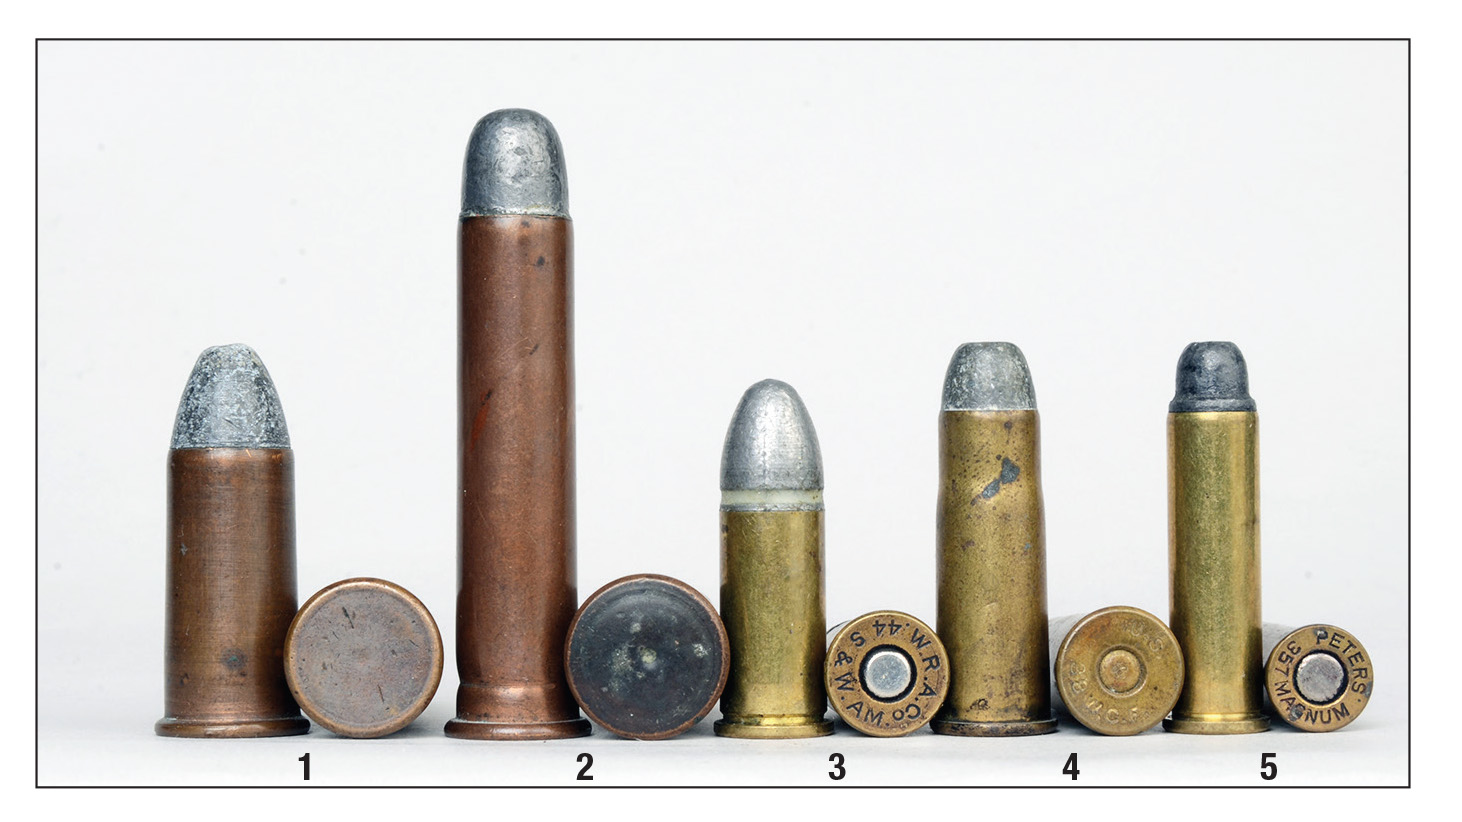 A variety of primers have been used through the years: (1) Rimfire .56-50 Spencer, (2) internal primed .45 Government, (3) the first reloadable revolver cartridge .44 Smith & Wesson American, (4) small primer in .38 WCF (.38-40) and (5) large pistol primer in .357 Smith & Wesson Magnum.